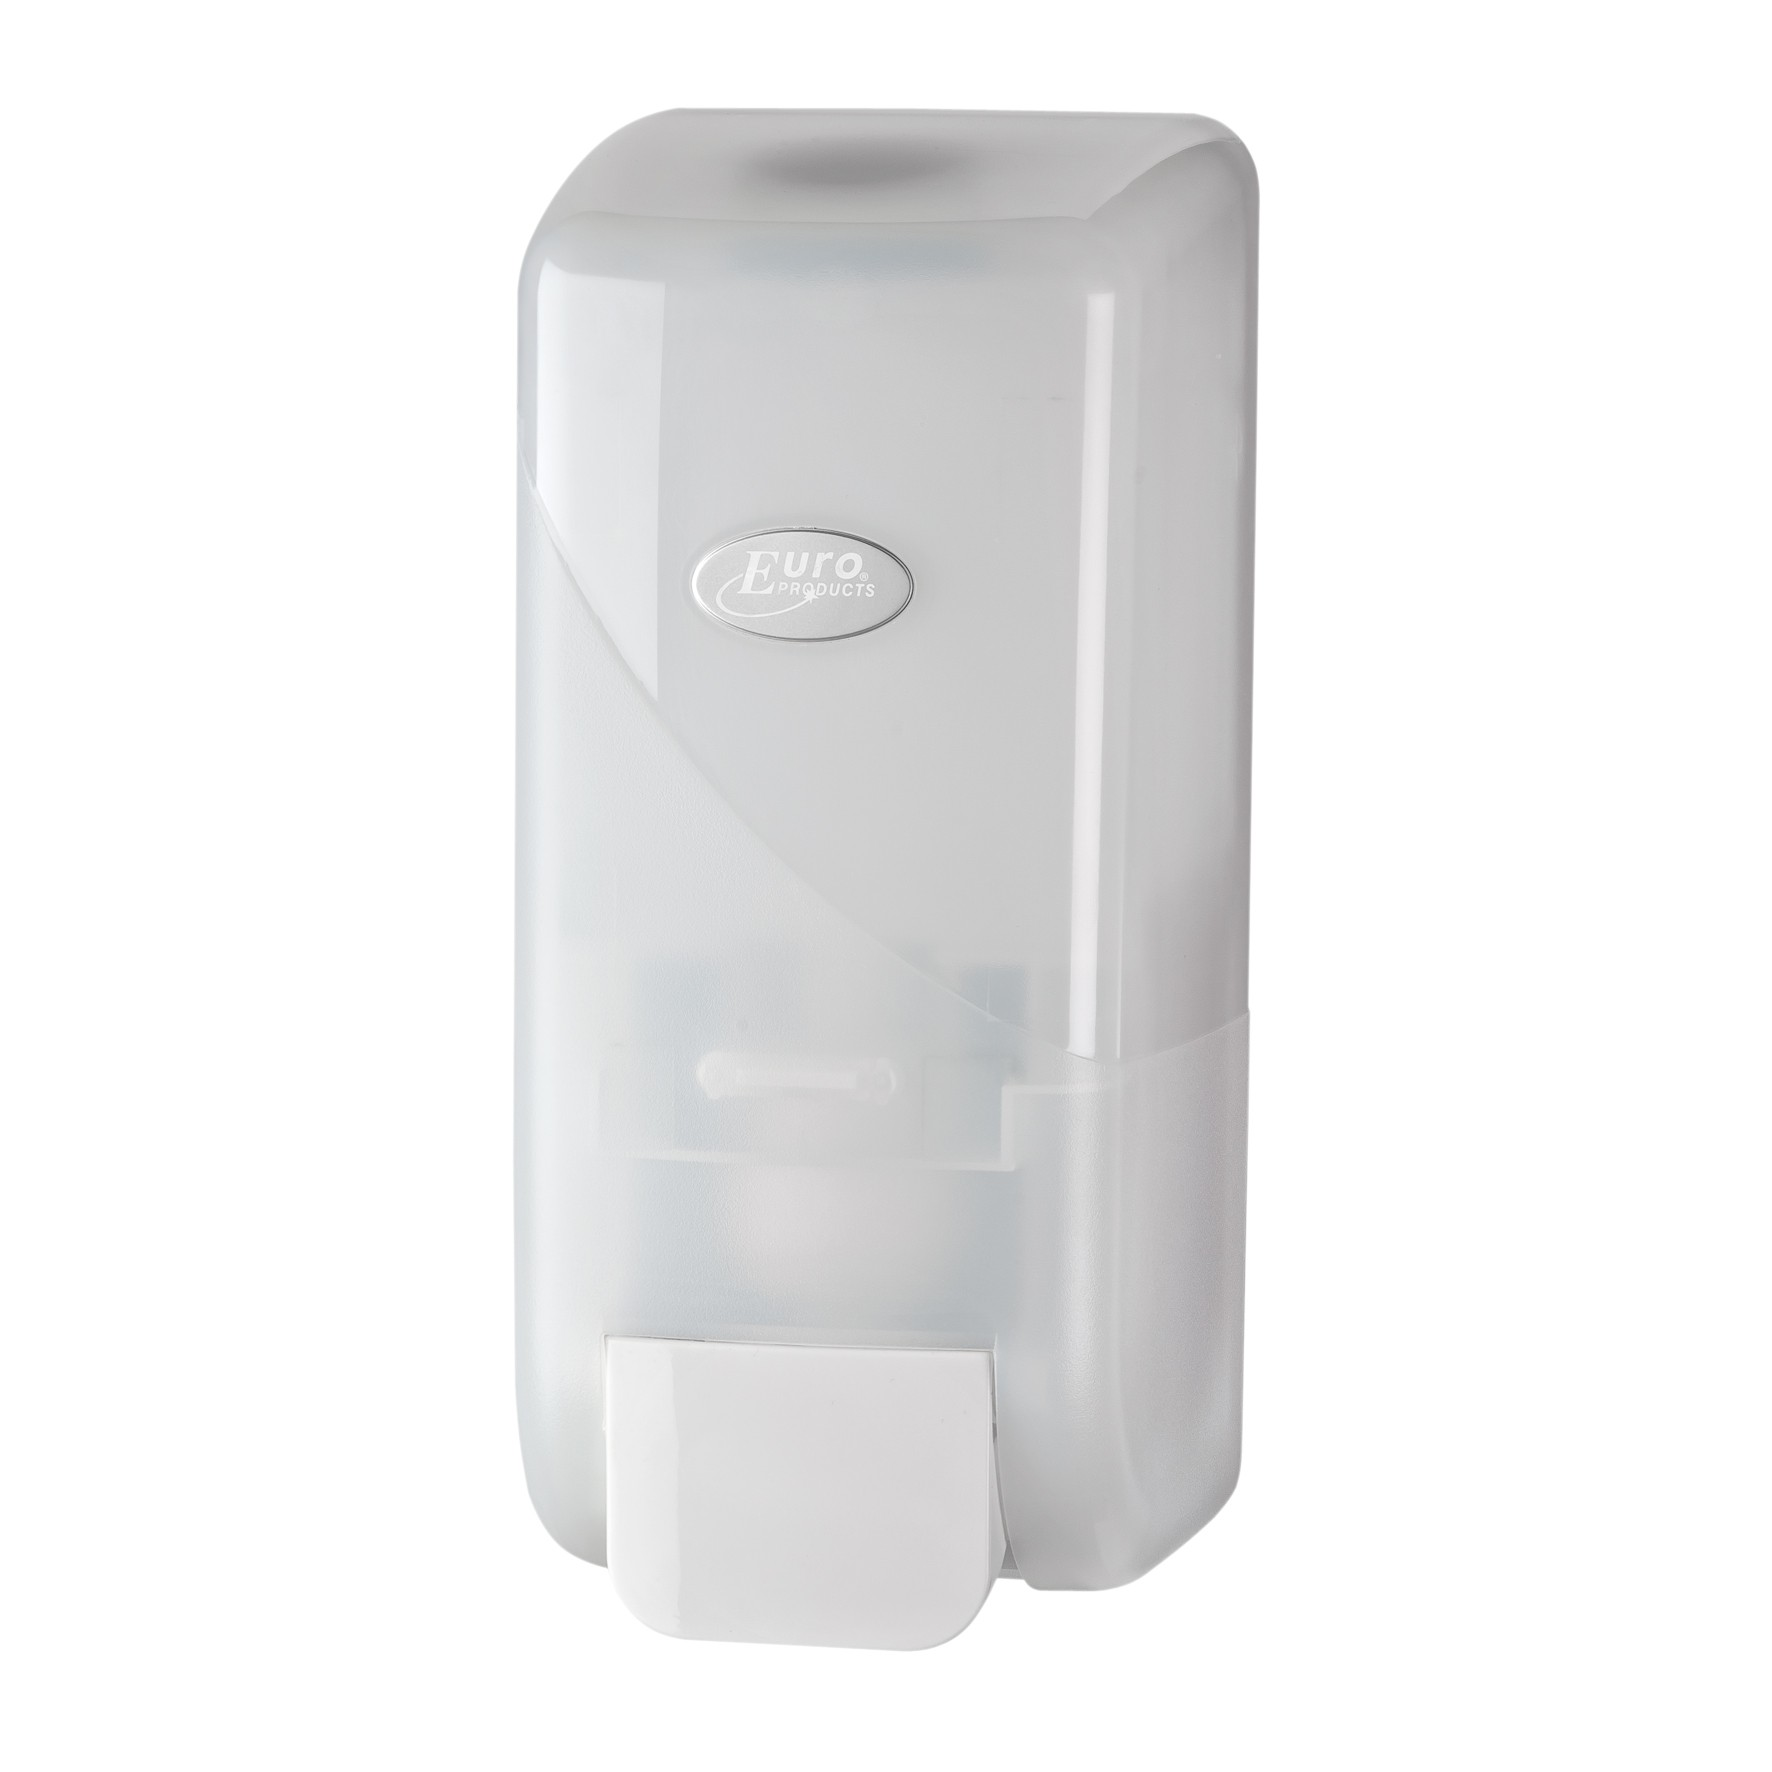 Ewepo Pearl White Foamzeep dispenser